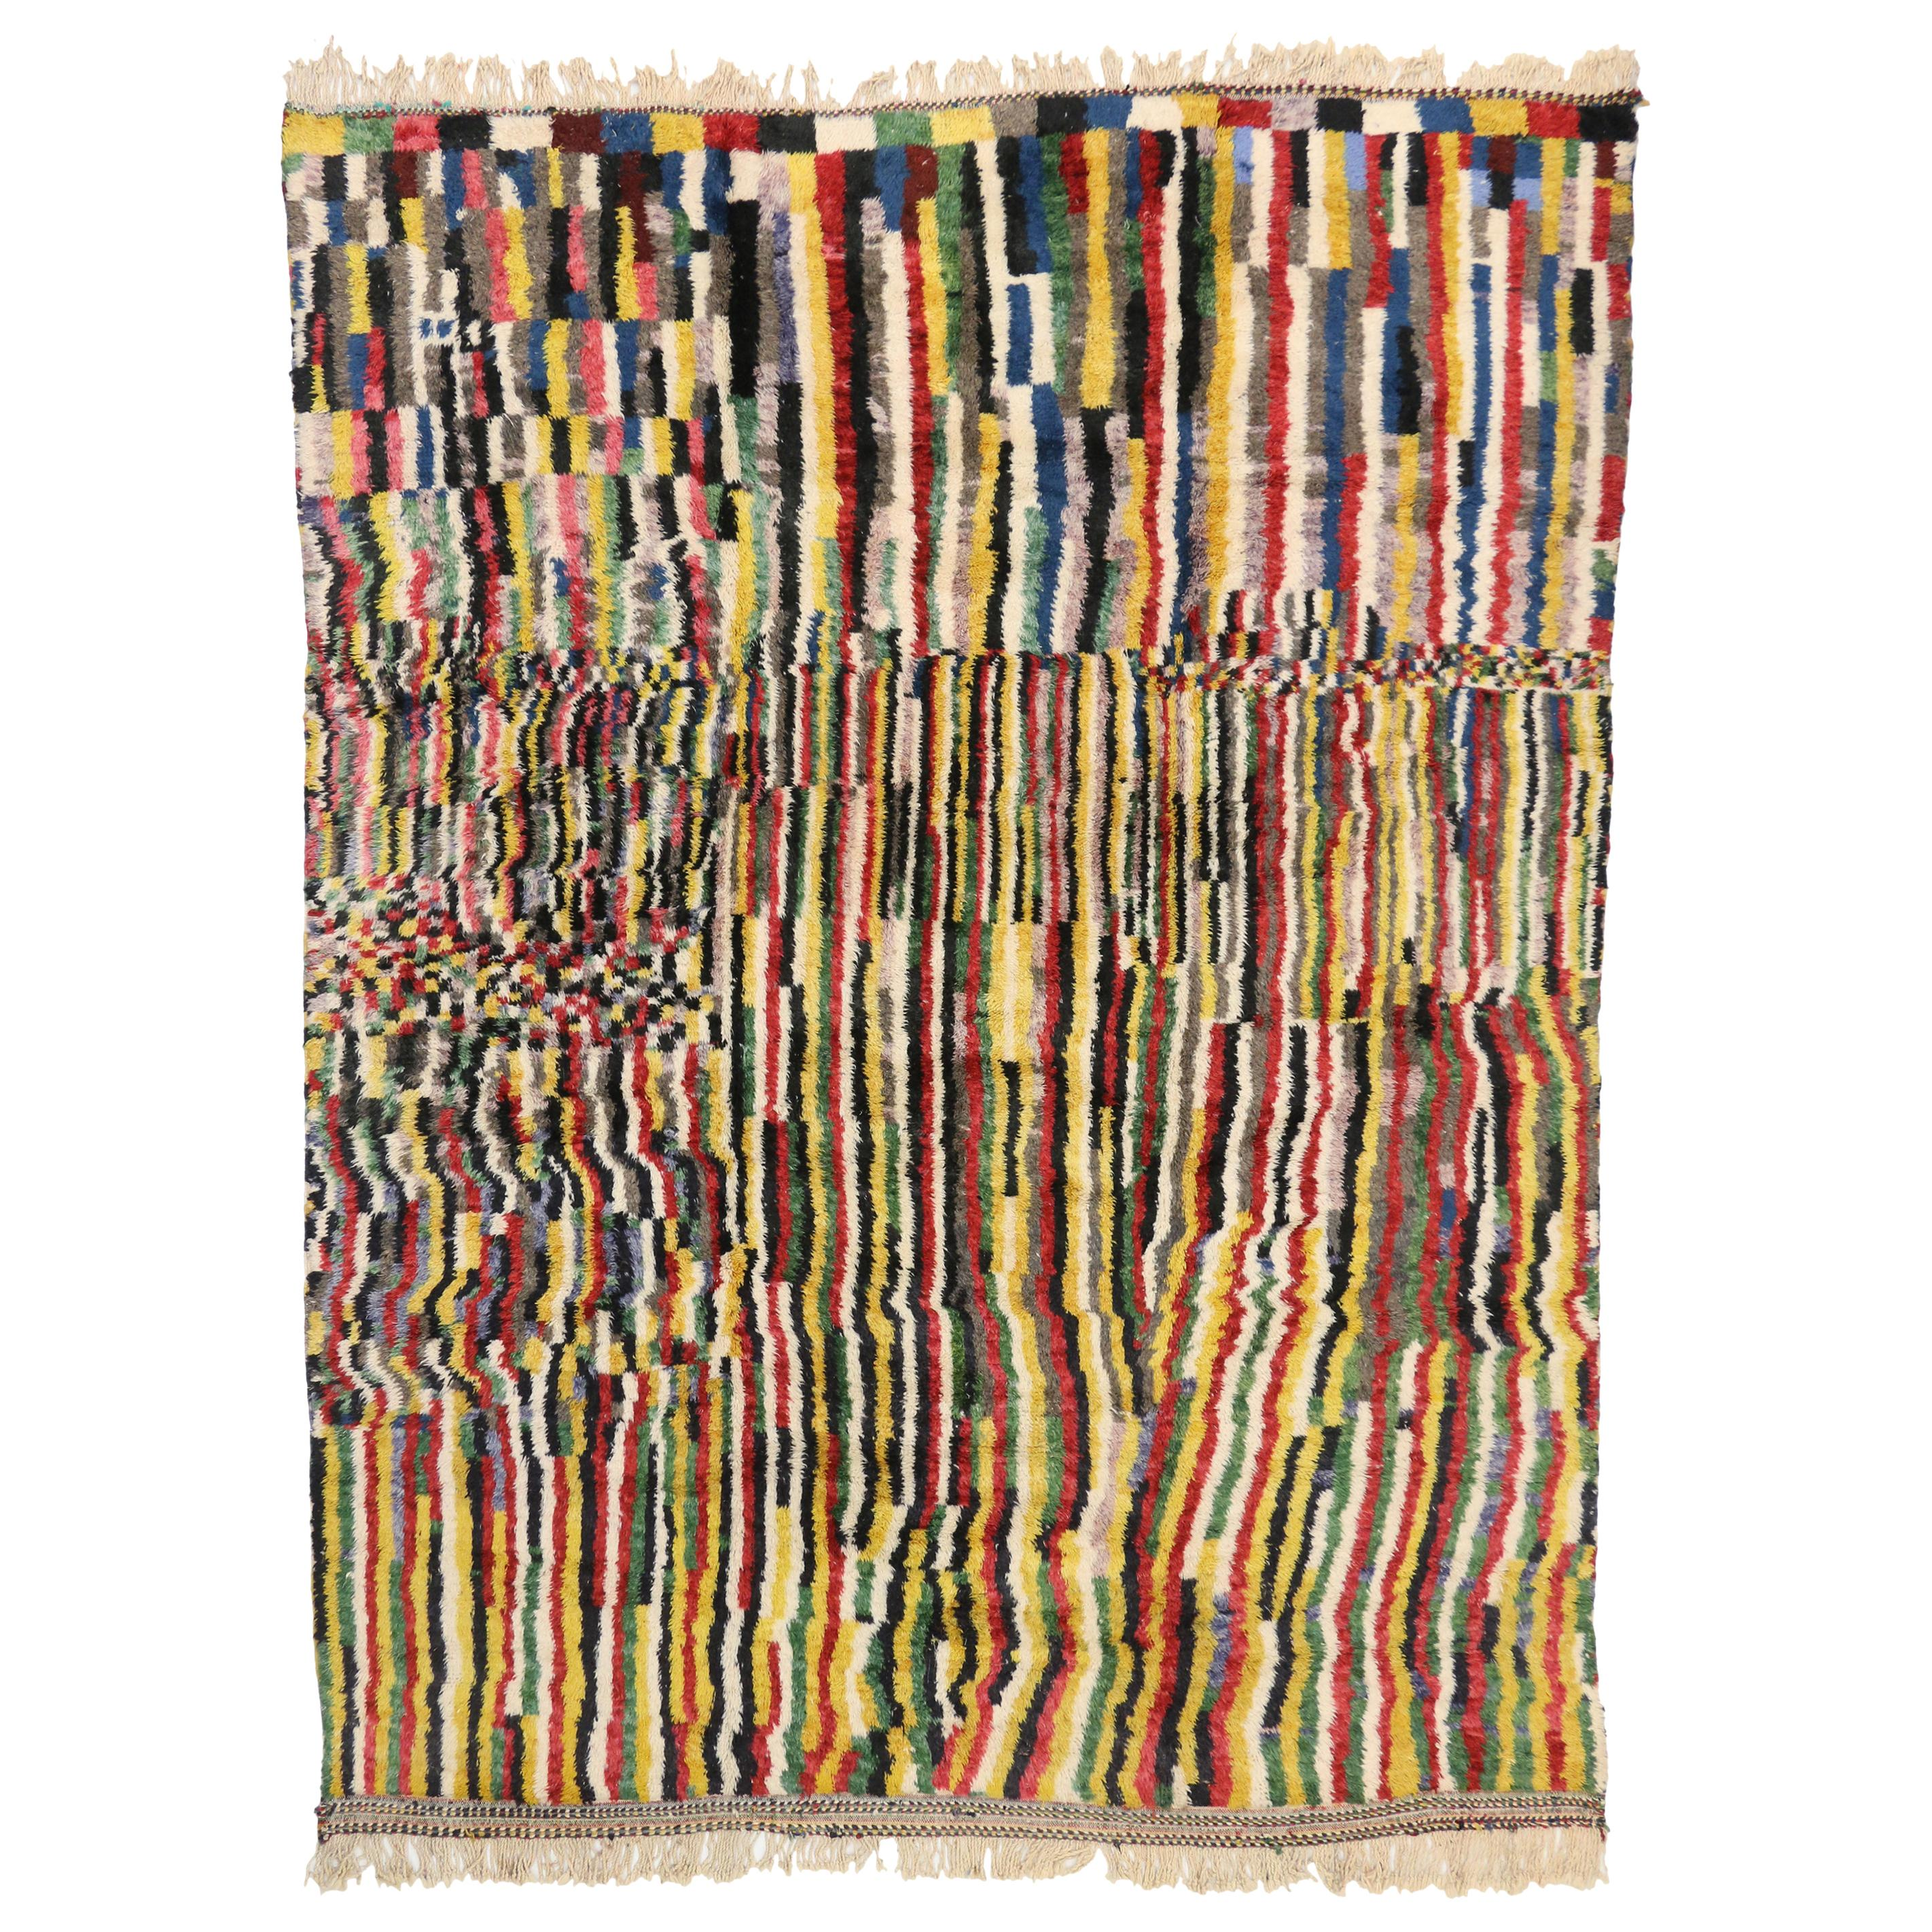 Contemporary Colorful Berber Moroccan Rug Inspired by Gerhard Richter